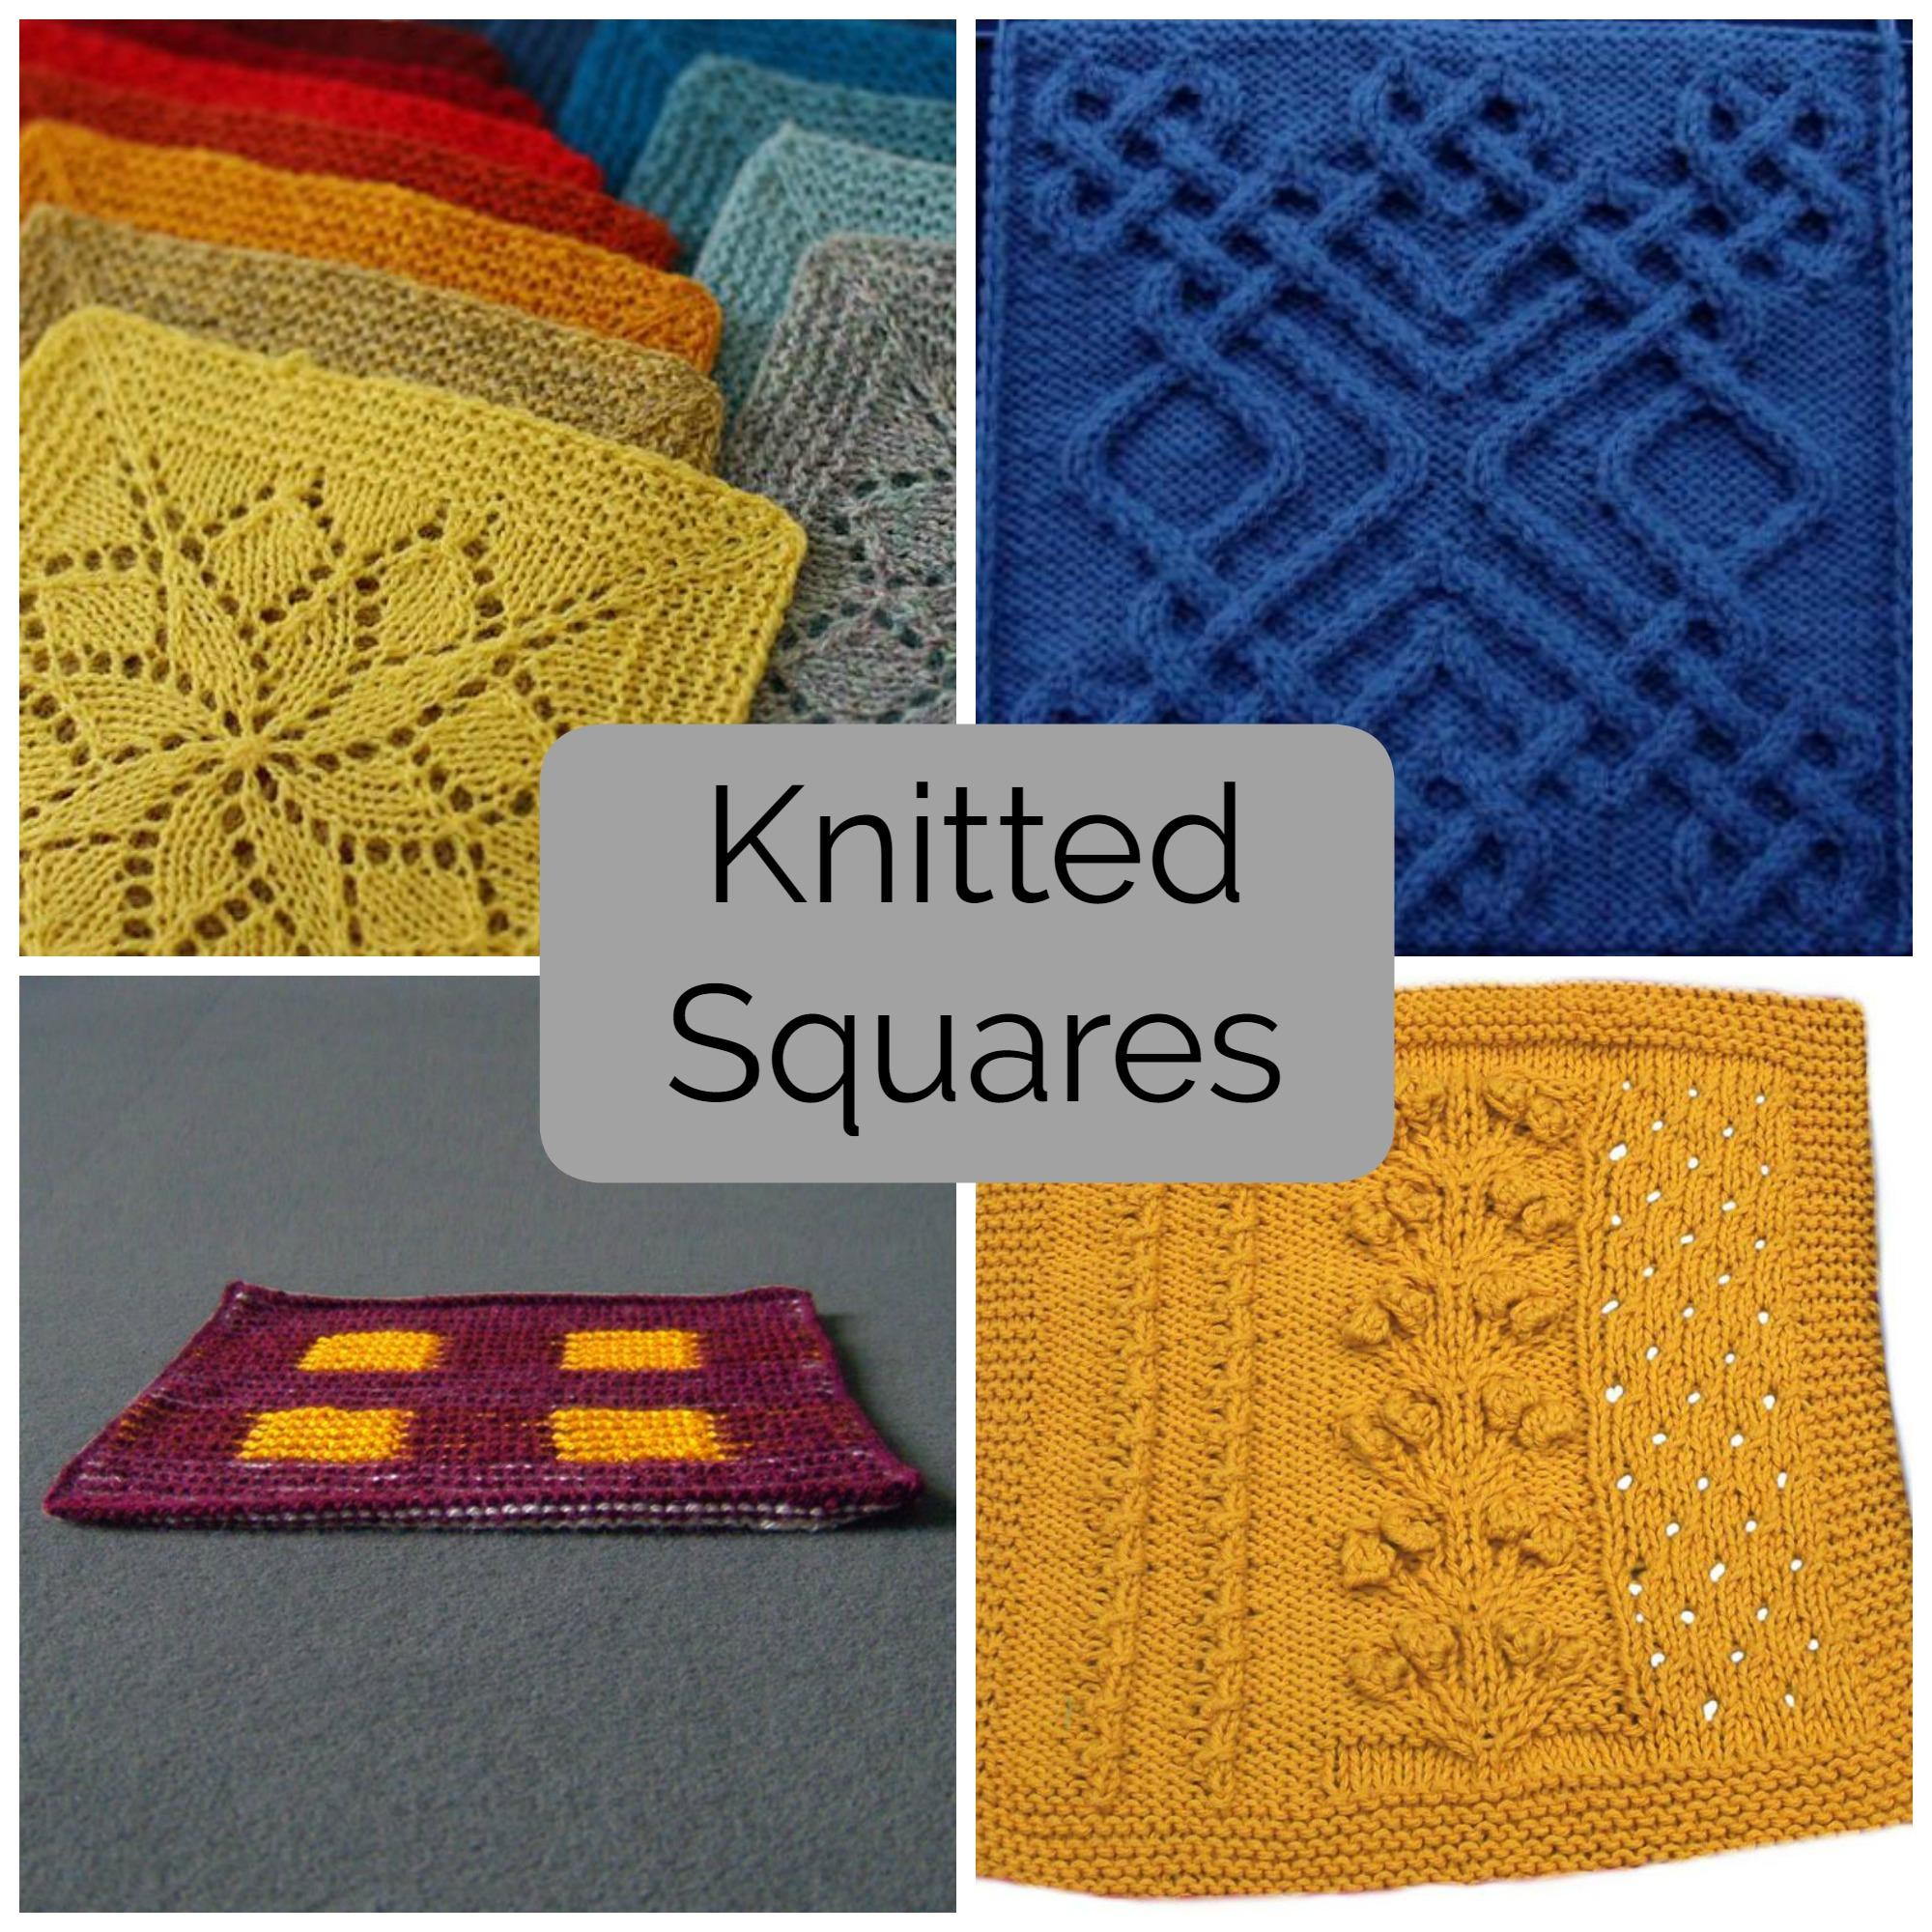 Celtic Afghan Knit Pattern Mix And Match These Knitted Squares For Any Project